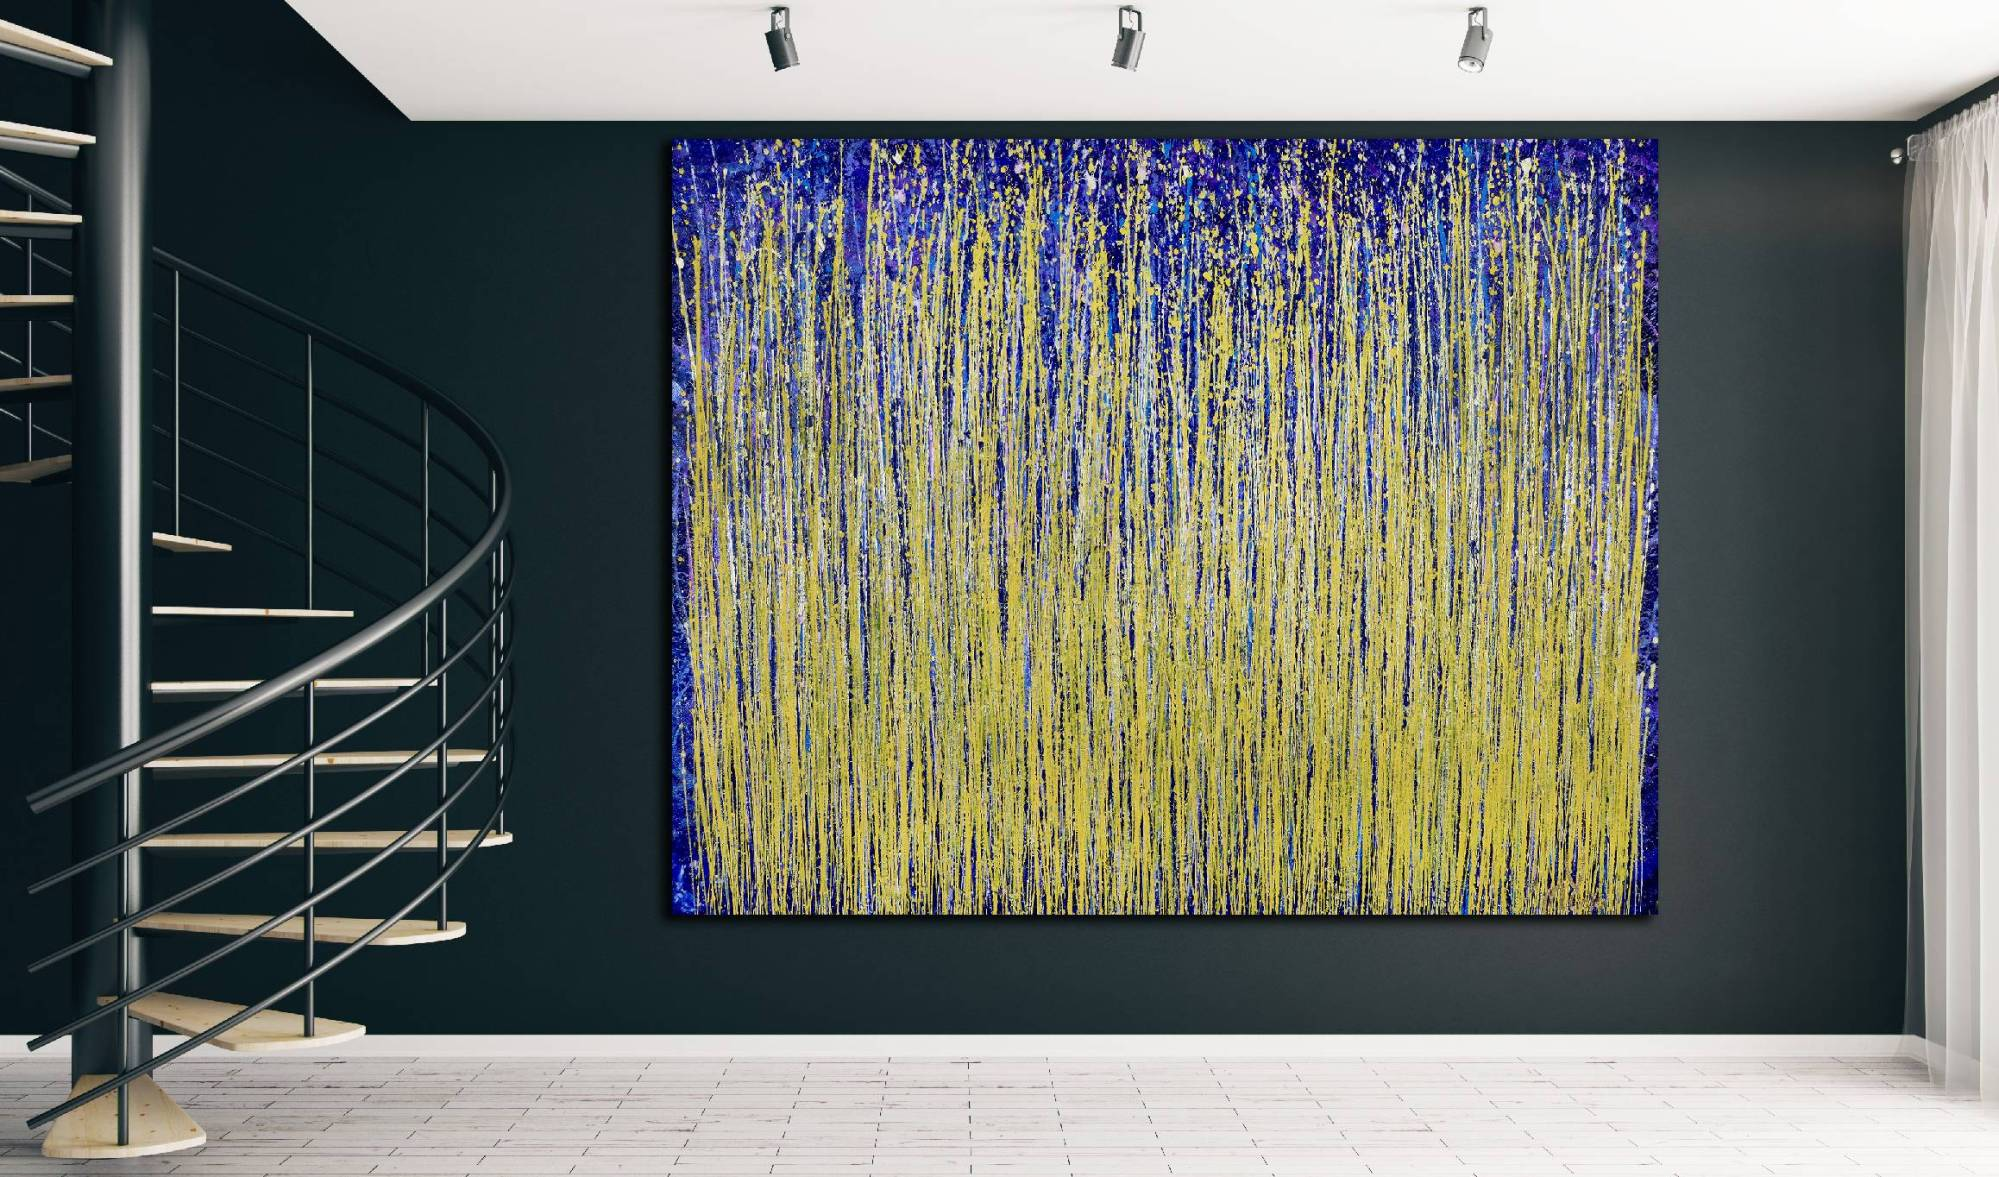 SOLD - Room View - Thunder silhouettes (Golden Spectra) 2 (2020) by Nestor Toro